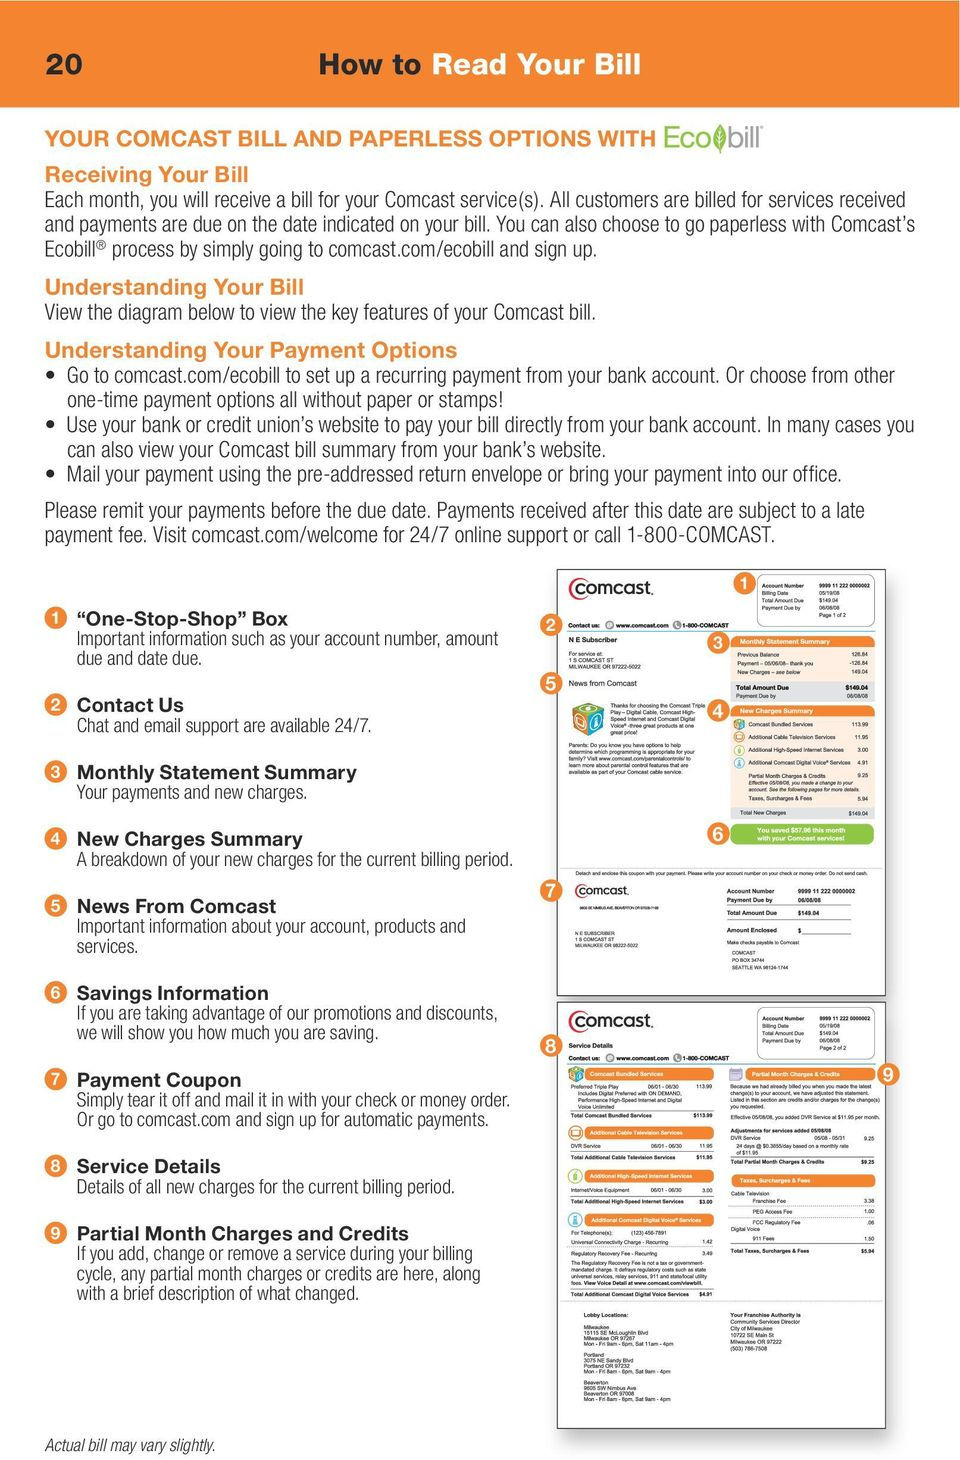 com/ecobill and sign up. Understanding Your Bill View the diagram below to view the key features of your Comcast bill. Understanding Your Payment Options Go to comcast.